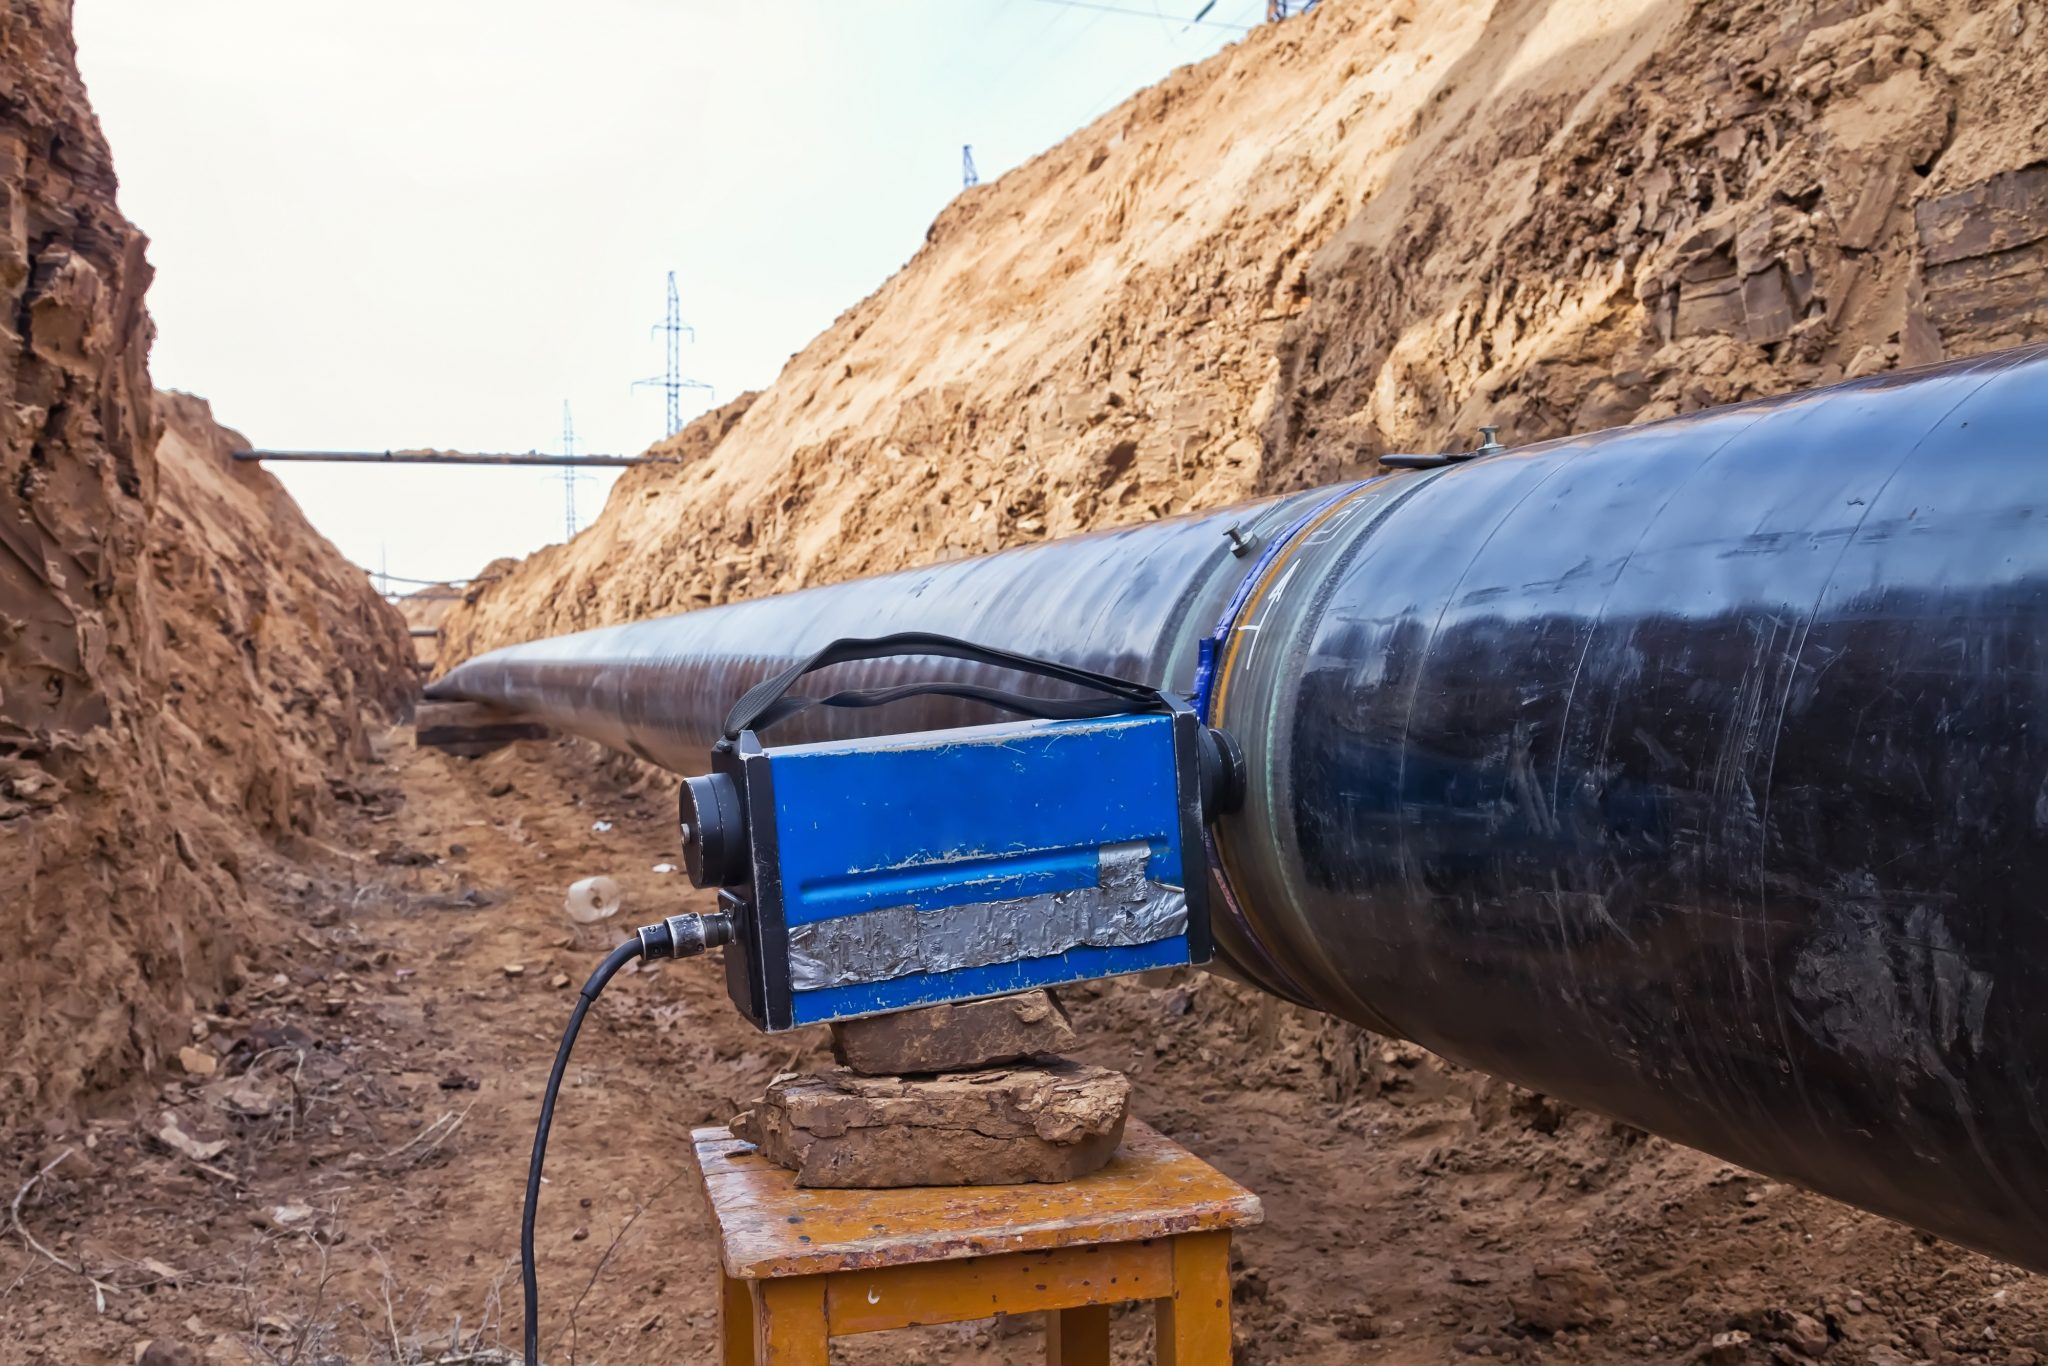 Uses for NDT - Testing Pipeline   20/20NDT